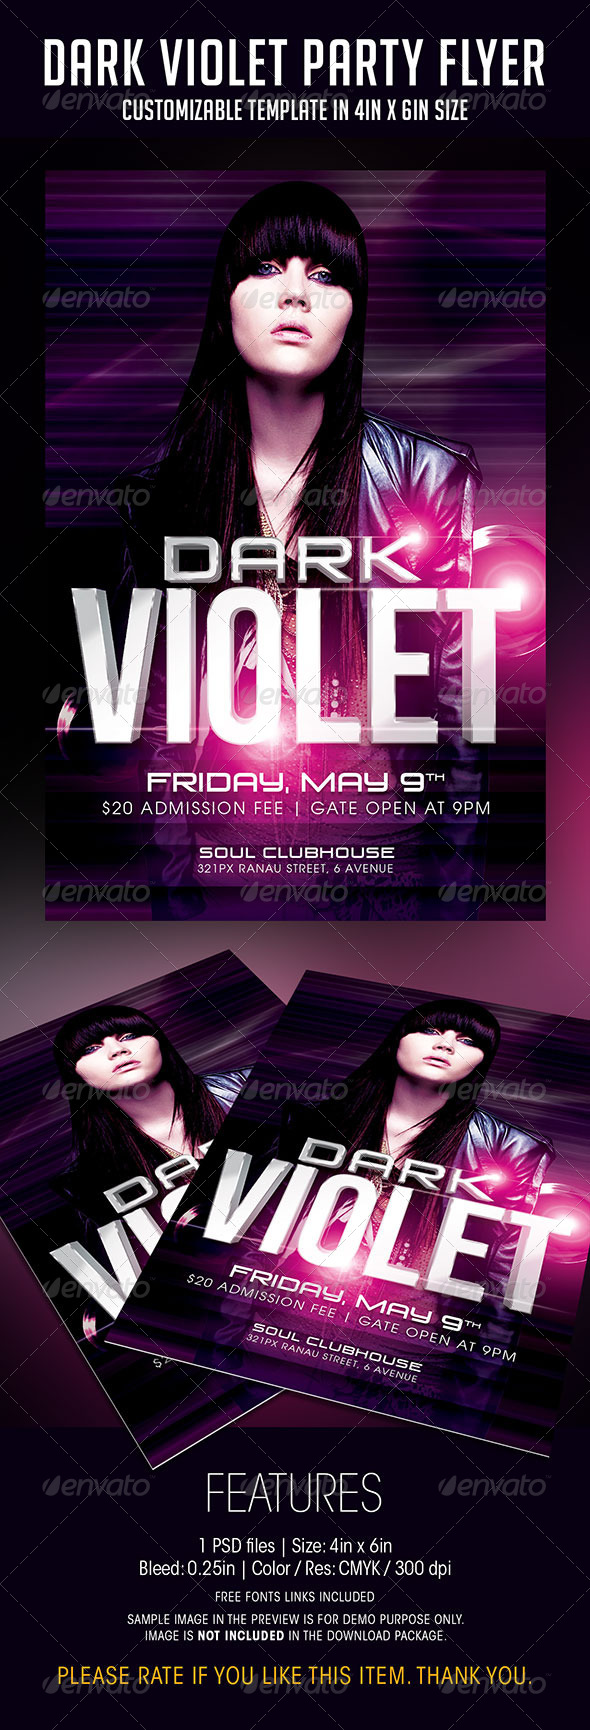 Dark Violet Party Flyer - Clubs & Parties Events